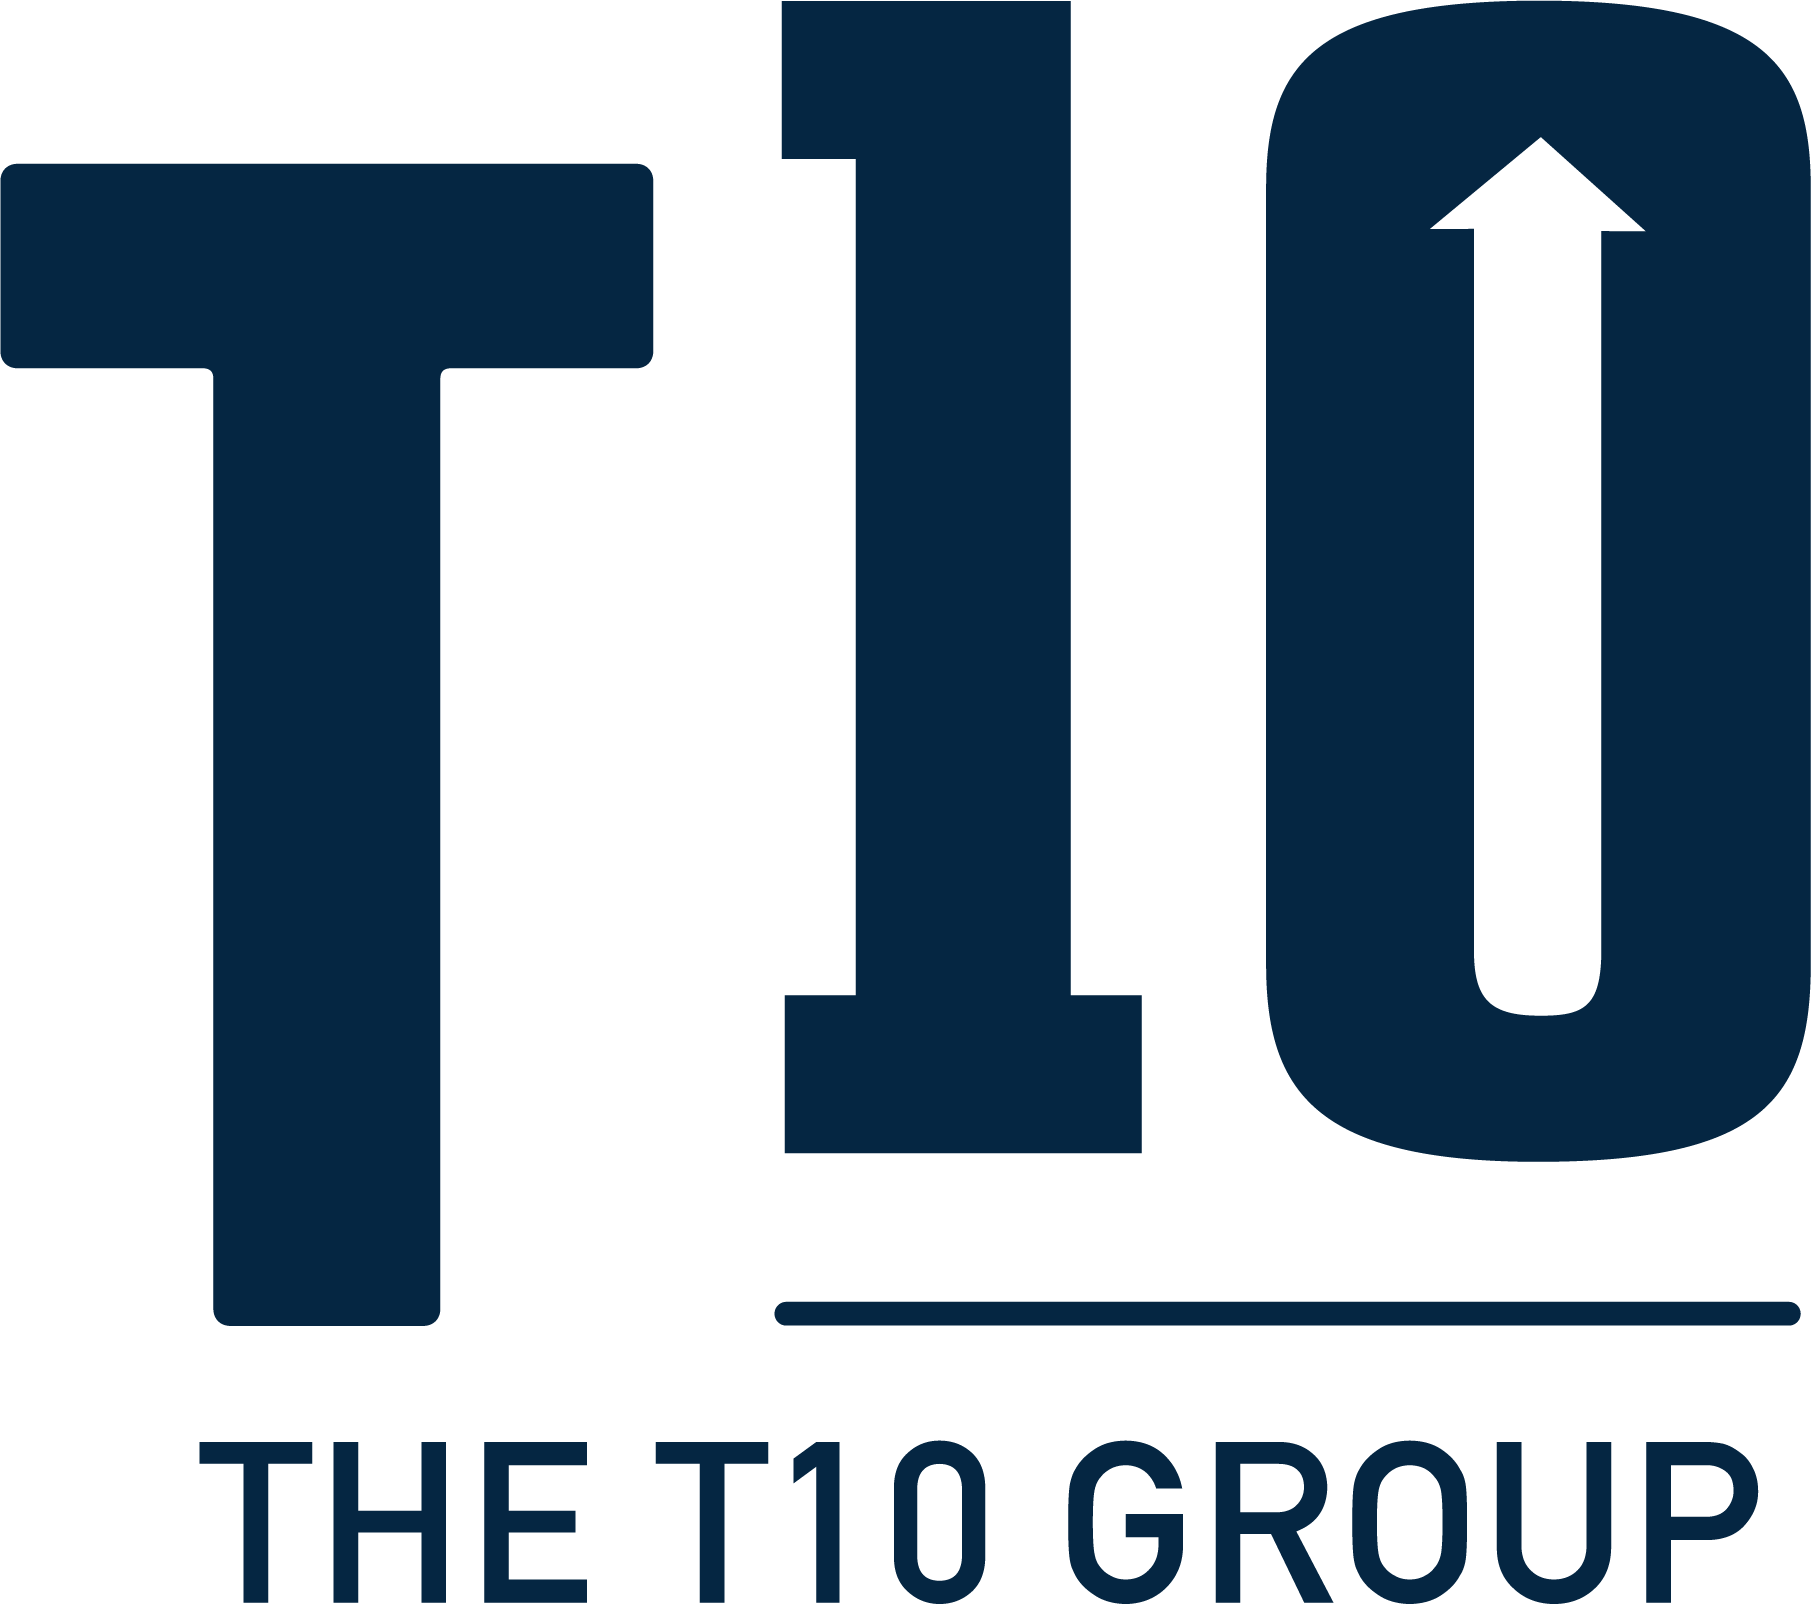 The T10 Group